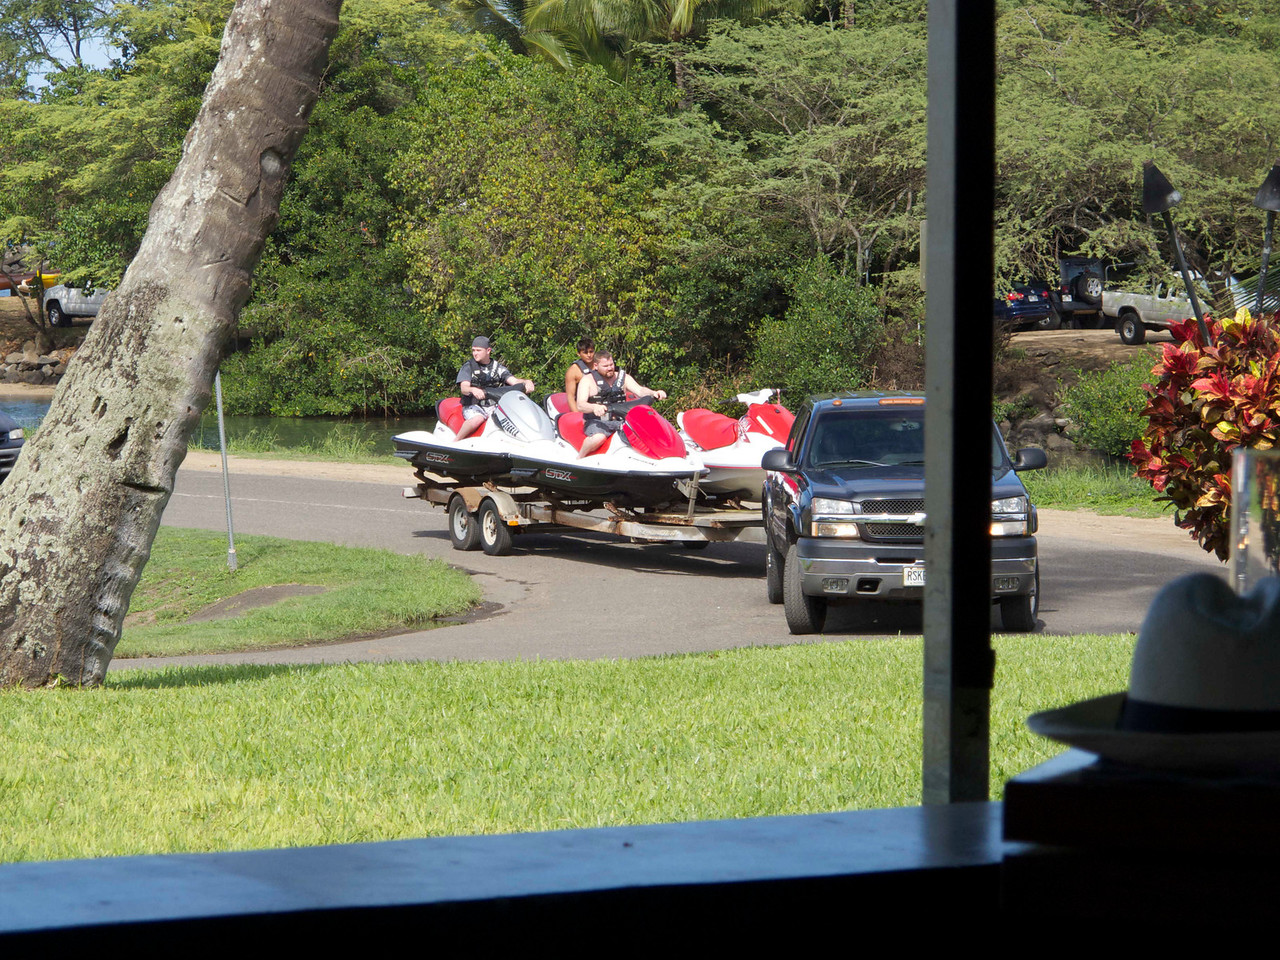 Lunch in Haleiwa at Joe's Seafood Grill gave us a view of these jet skiers in action.